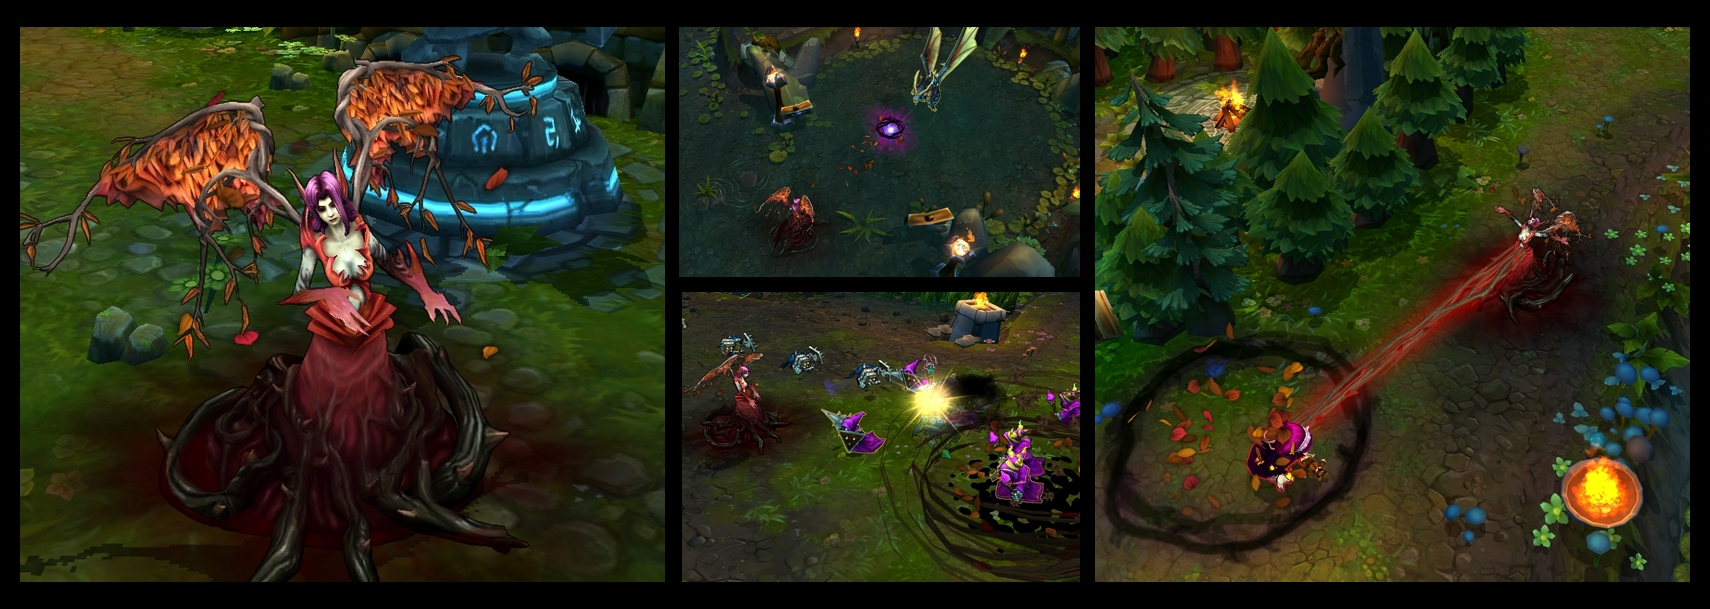 Blackthorn Morgana Skin Spotlight Get It Now